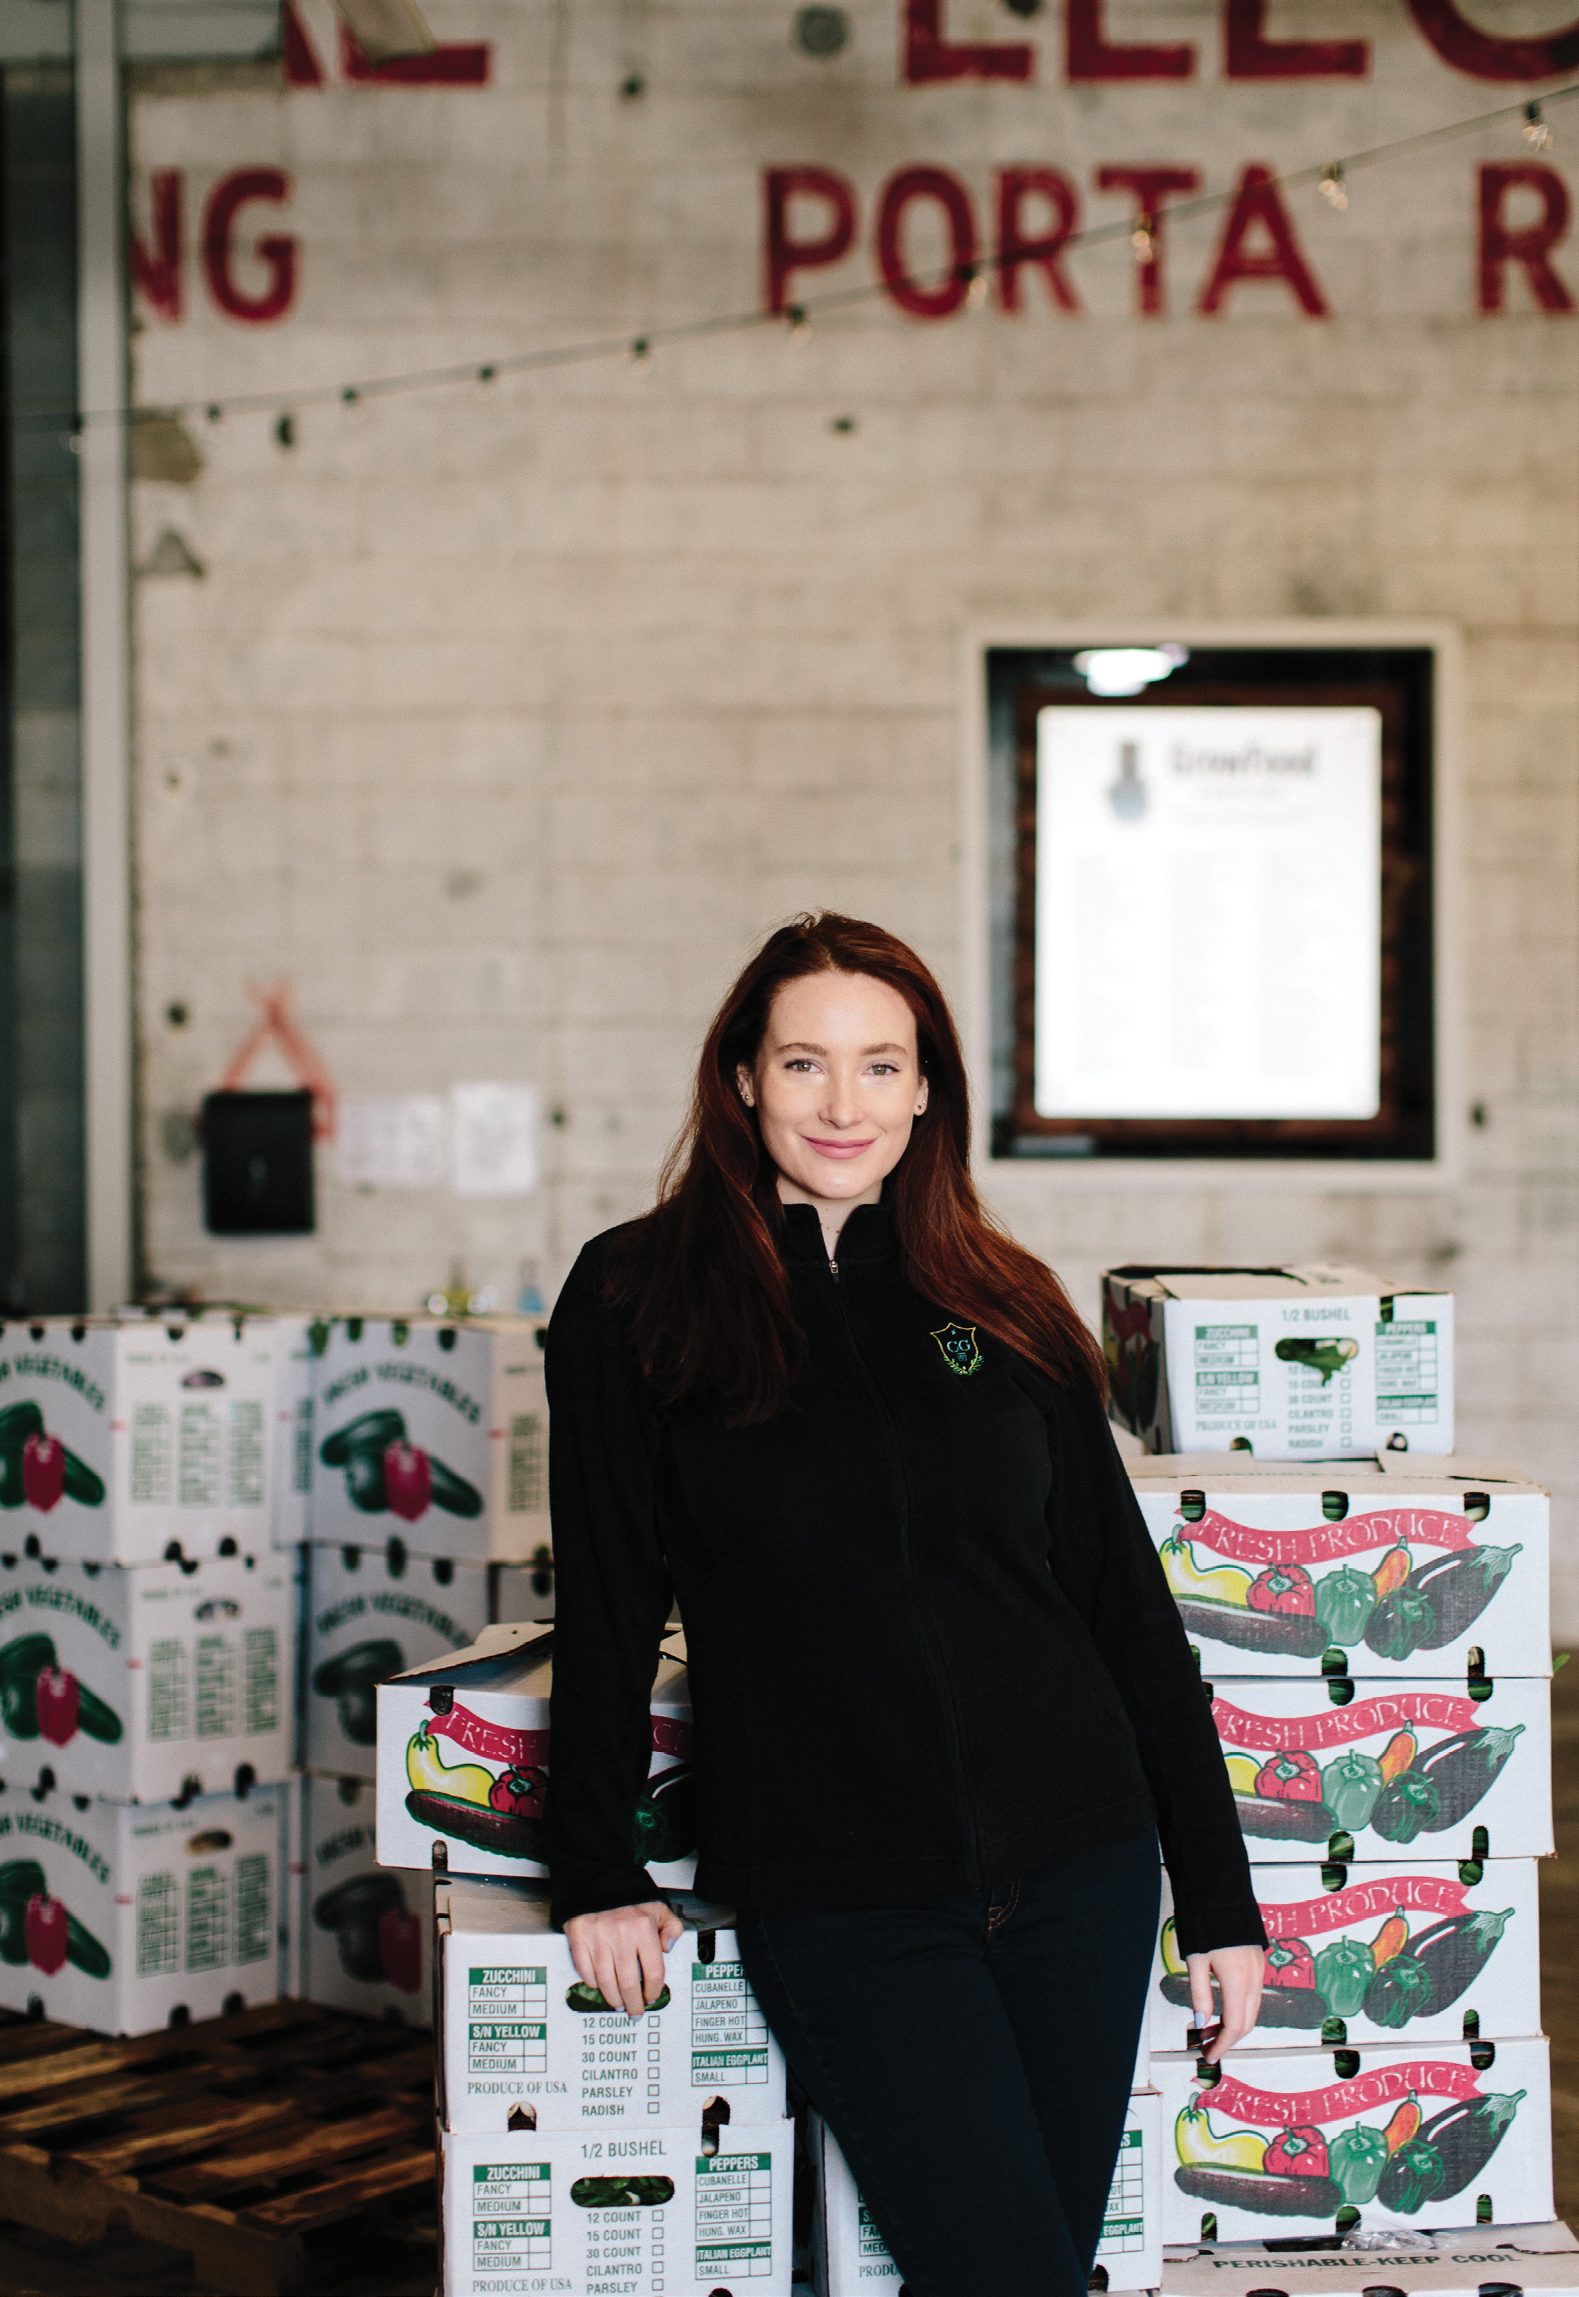 """GrowFood makes buying produce easy—lots of unique items and staples, all local. Right now, I'm loving their baby turnips and different types of kale."" —Amalia Scatena, Cannon Green"